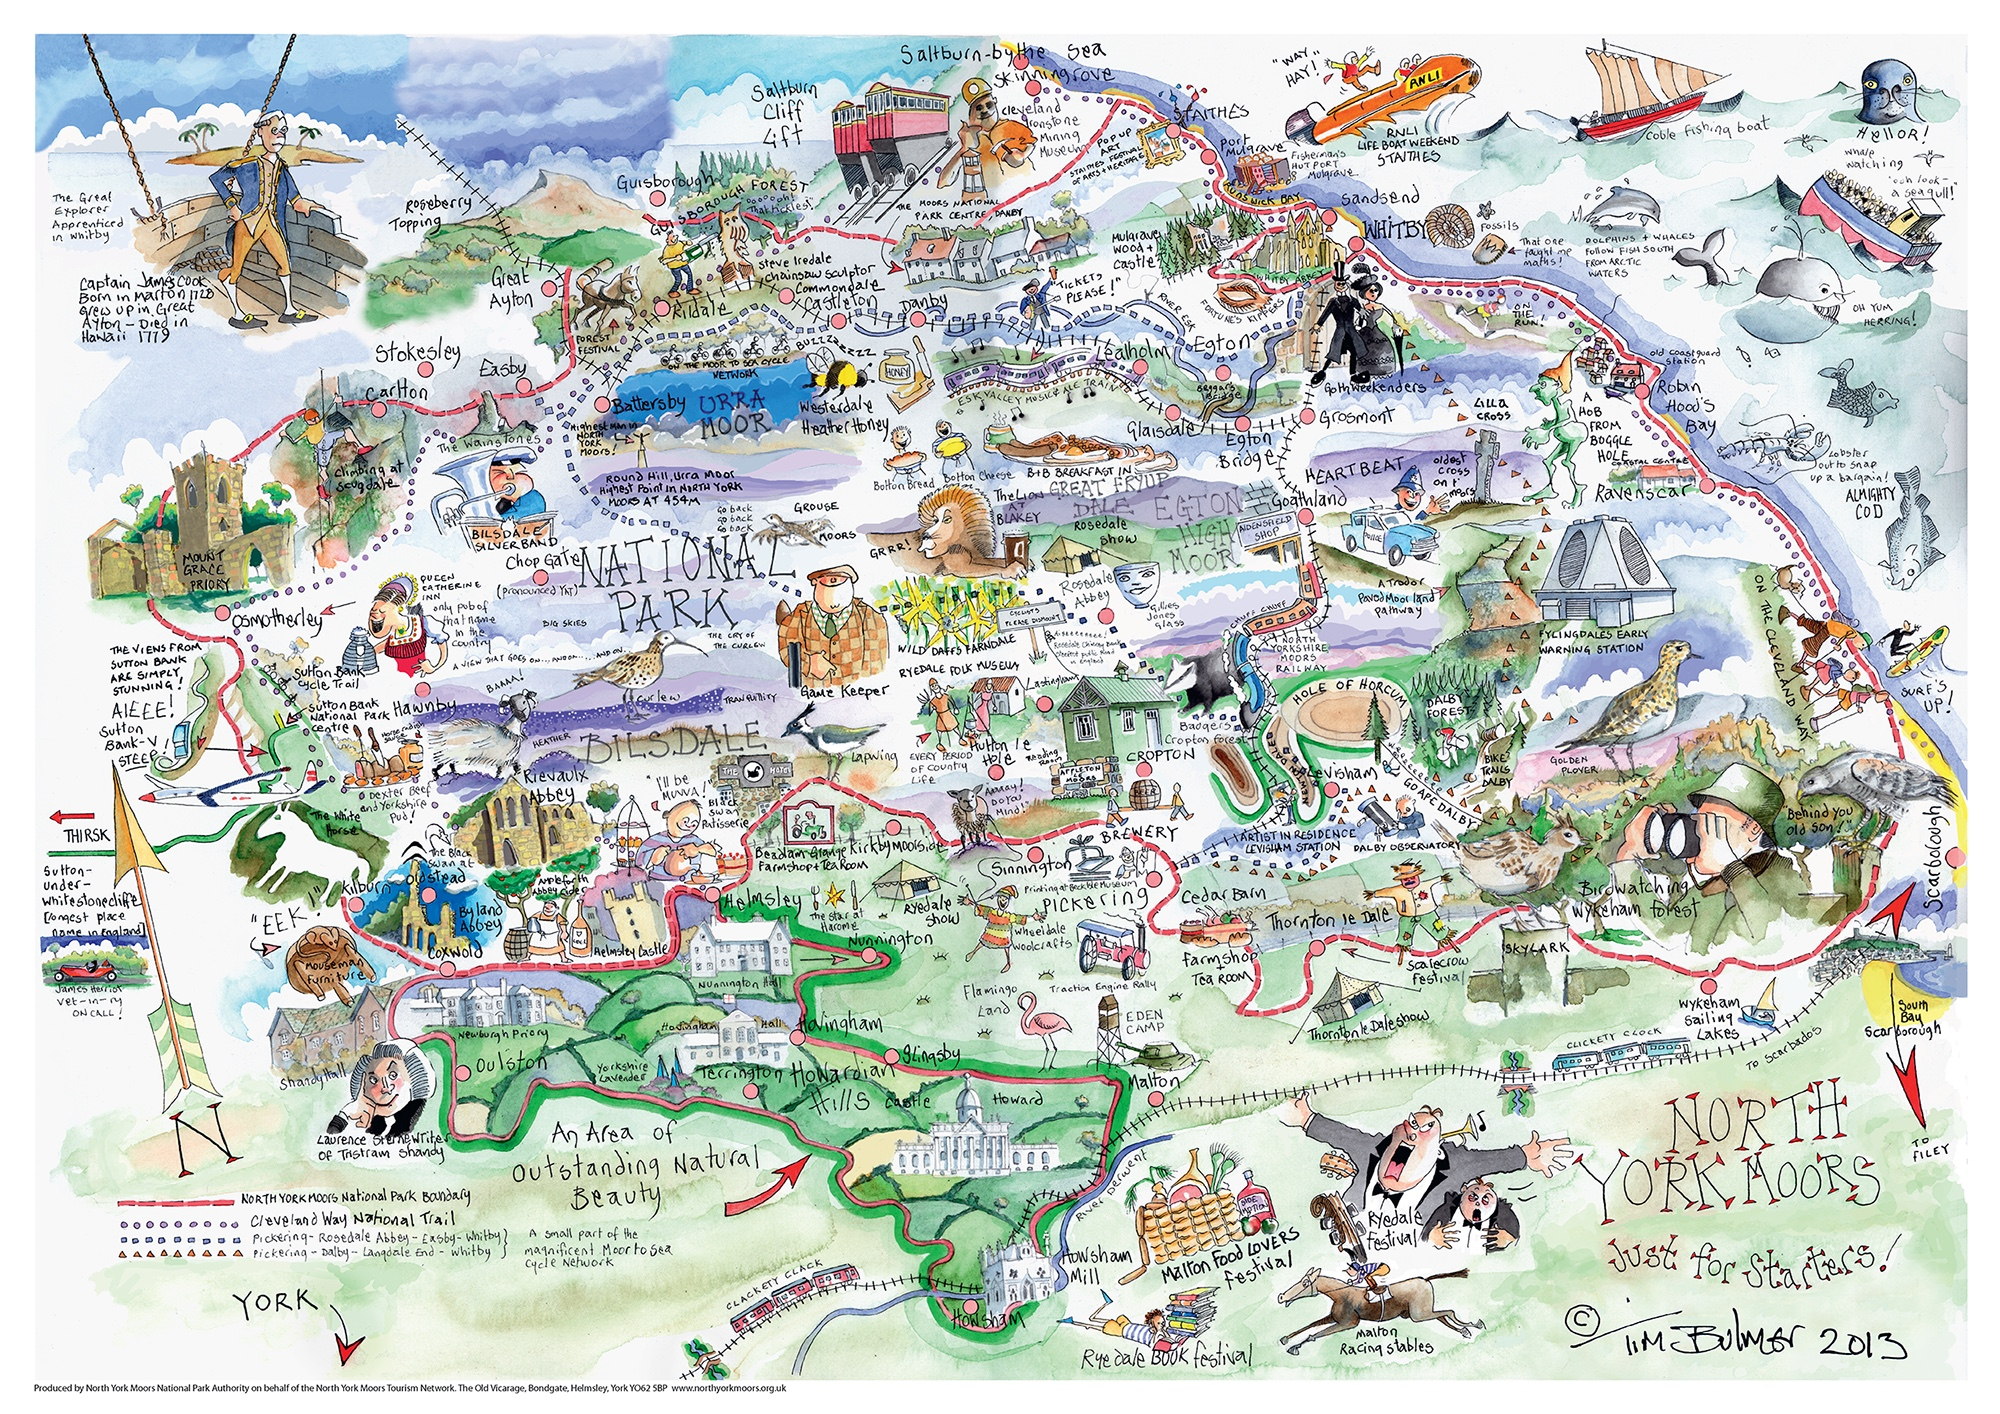 Map of North York Moors Drawn by Tim Bulmer